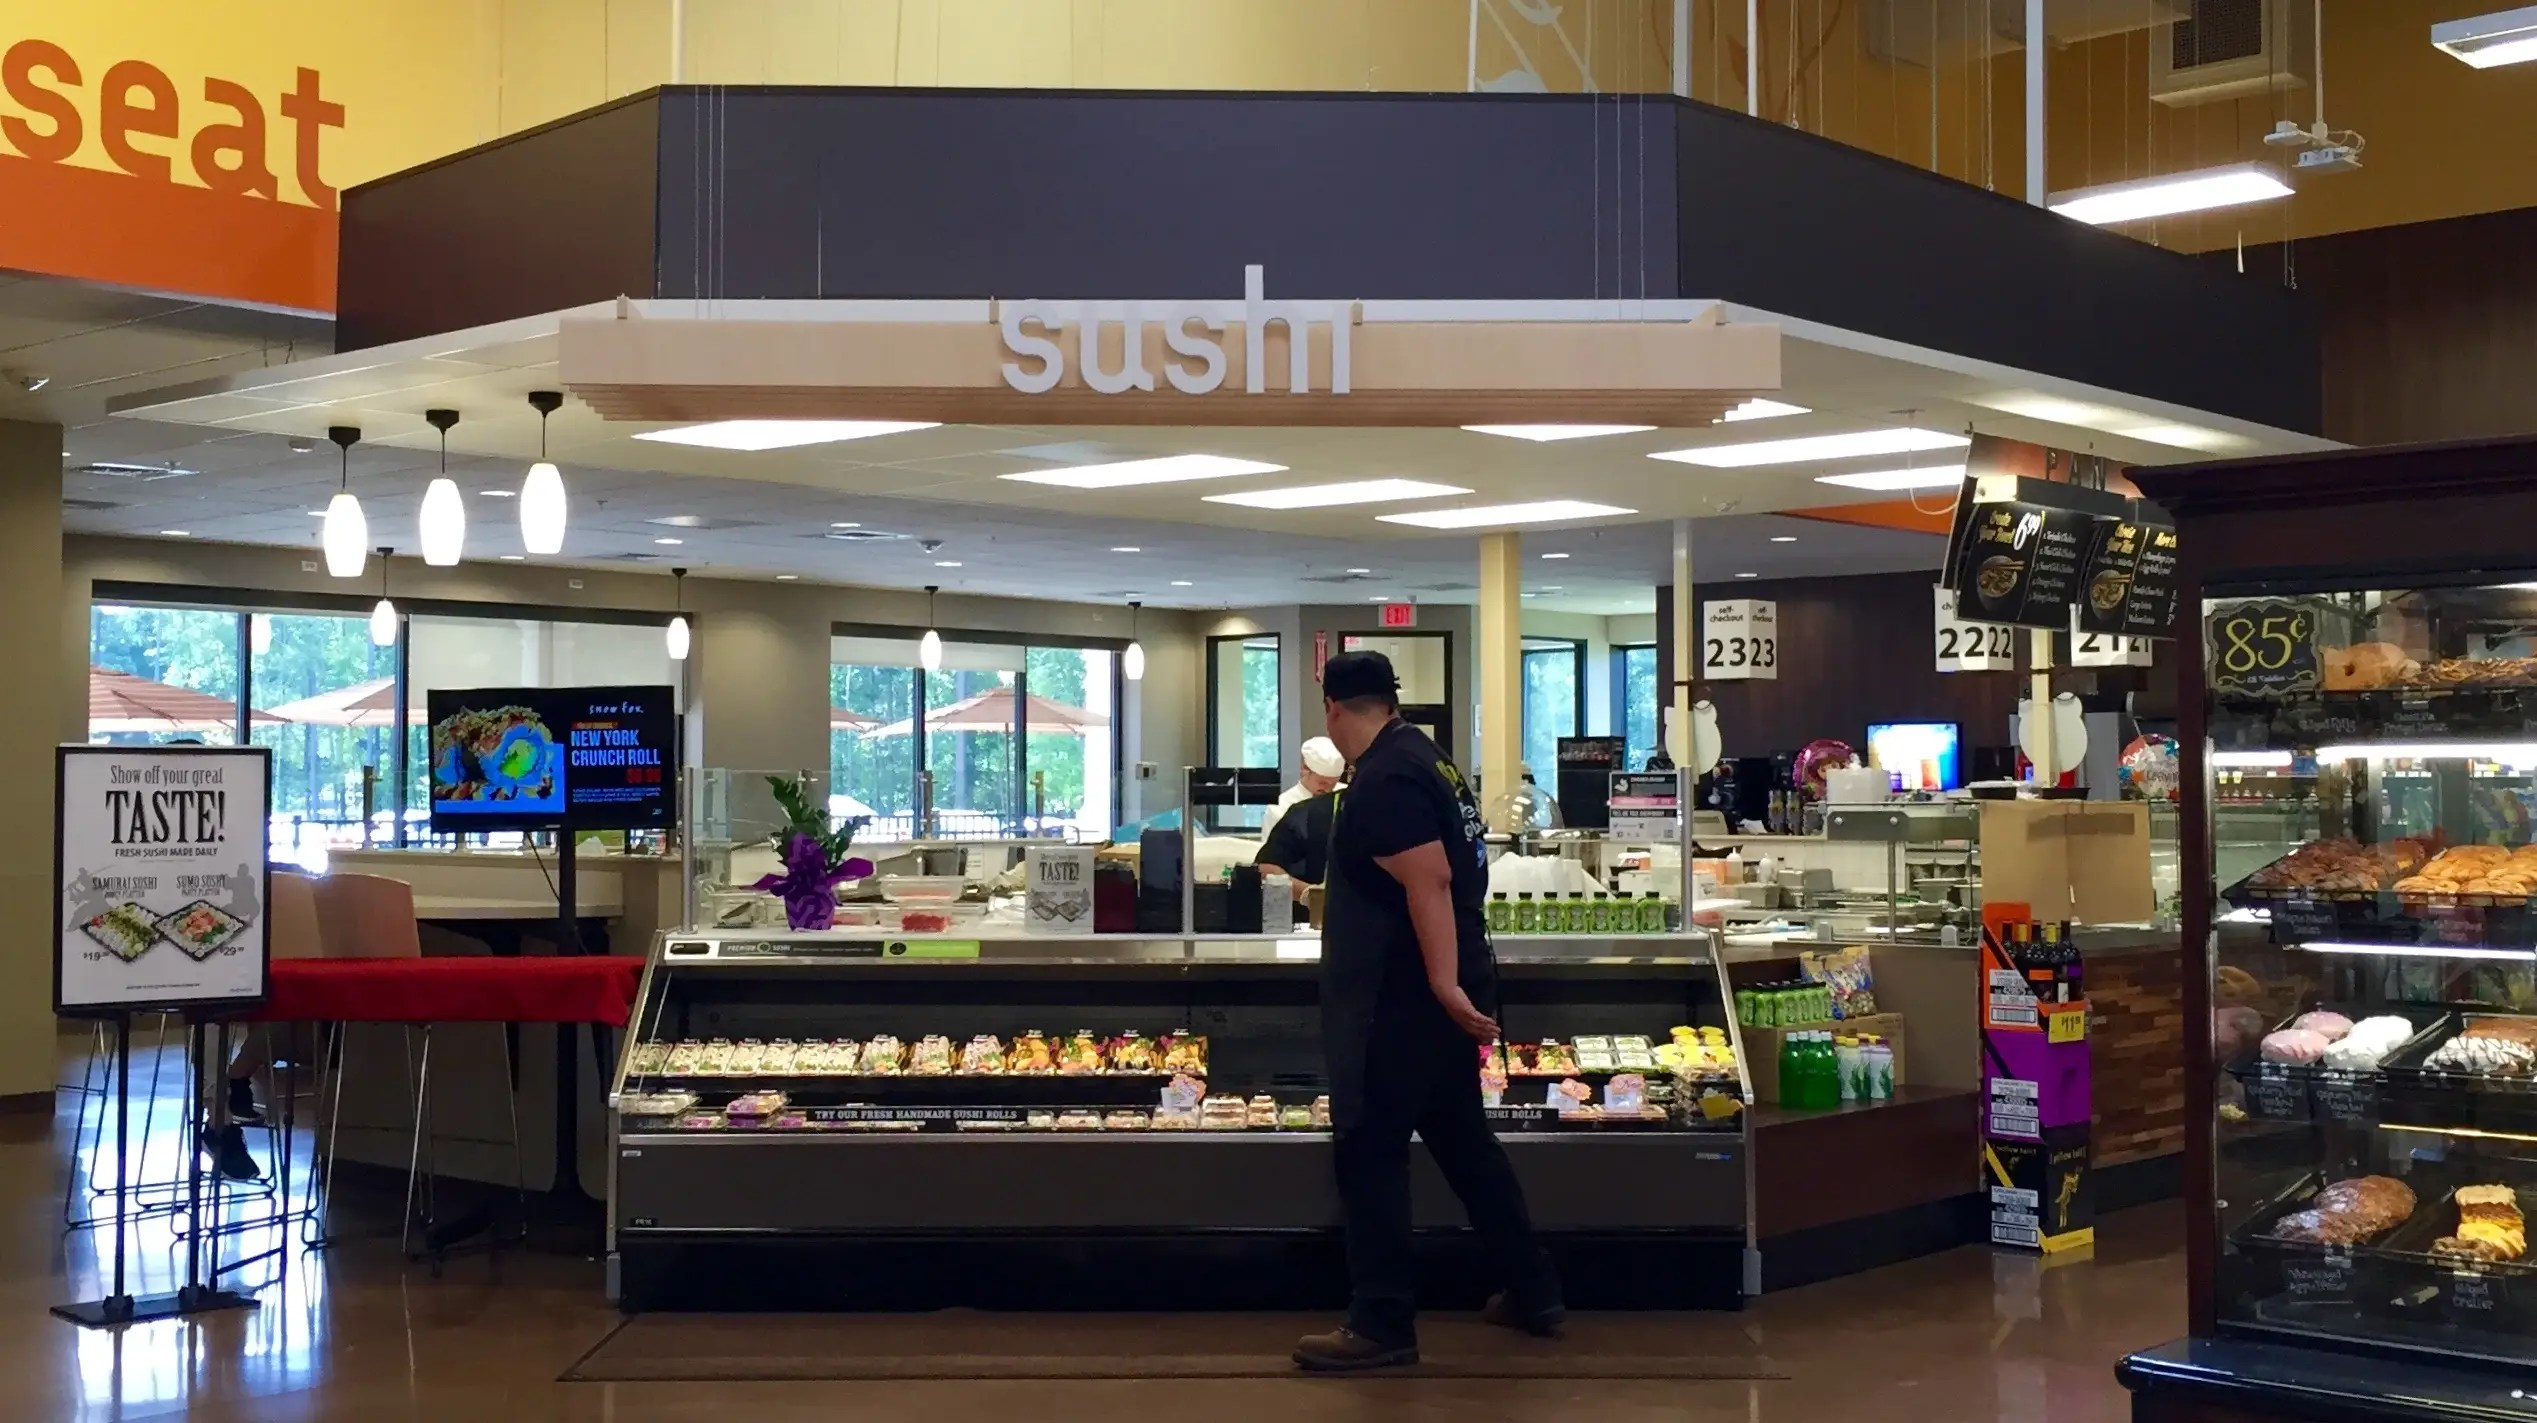 Just beyond the produce department, there are several prepared-food counters like this one, where three chefs are behind the counter rolling sushi.